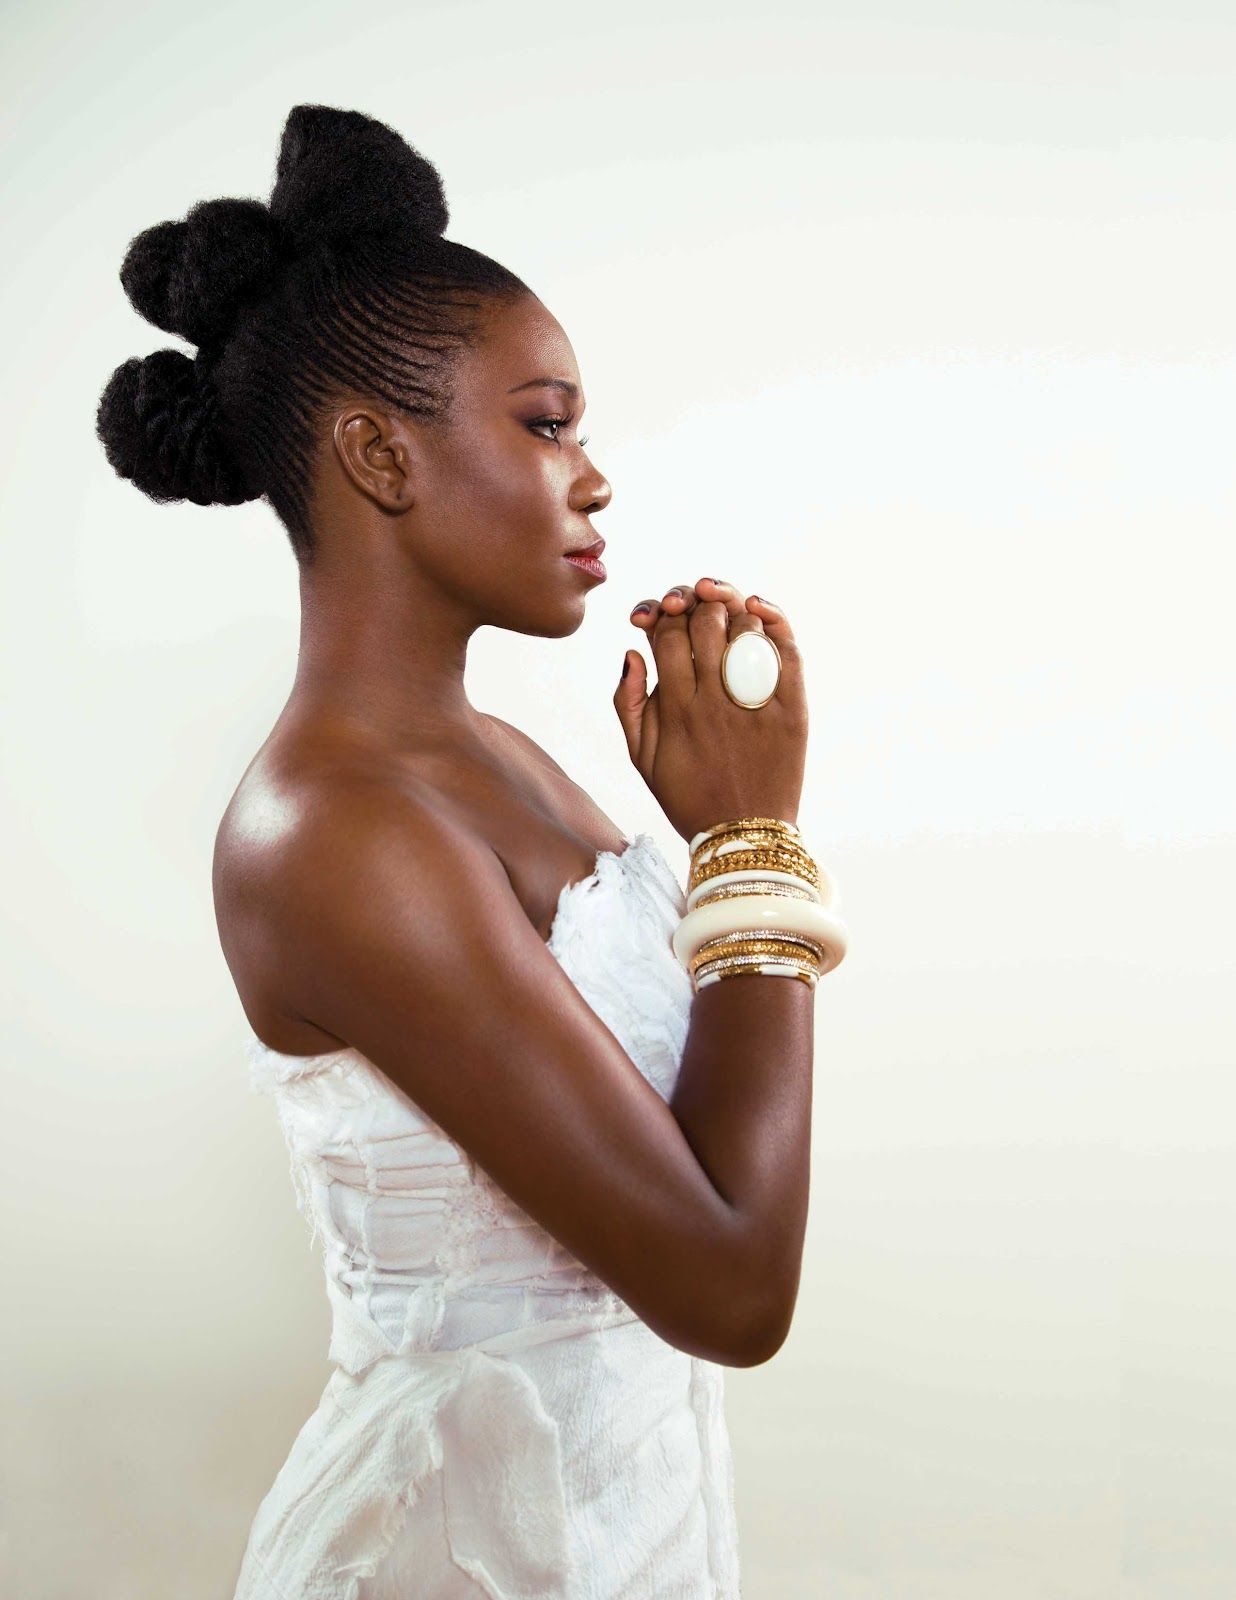 India Arie is an American singer-songwriter, actress, musician, and ...